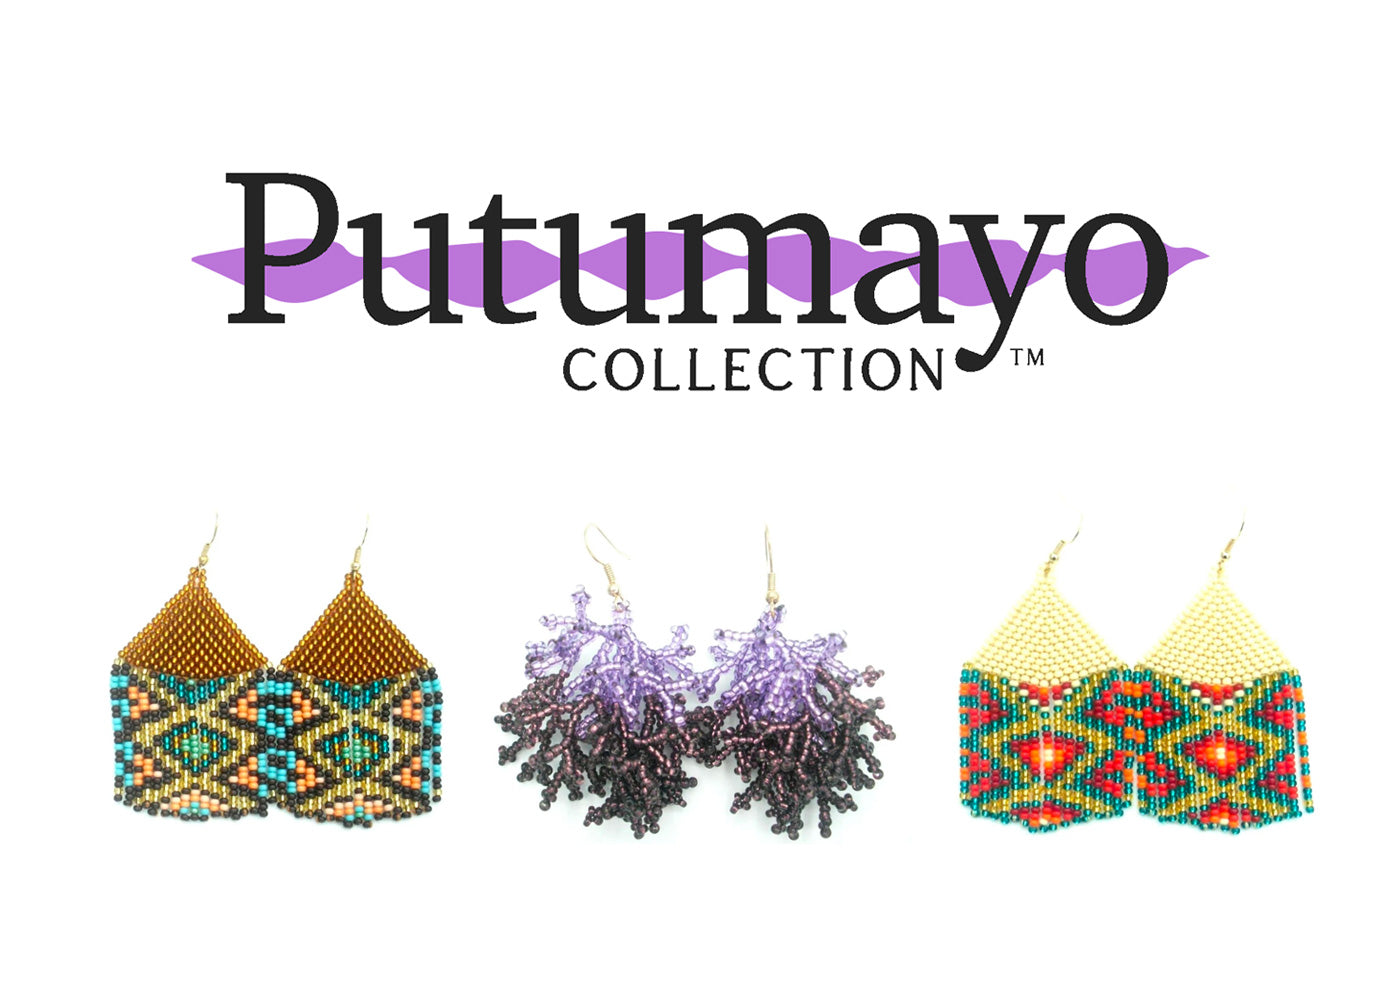 Putumayo Collection™ by D'cocora